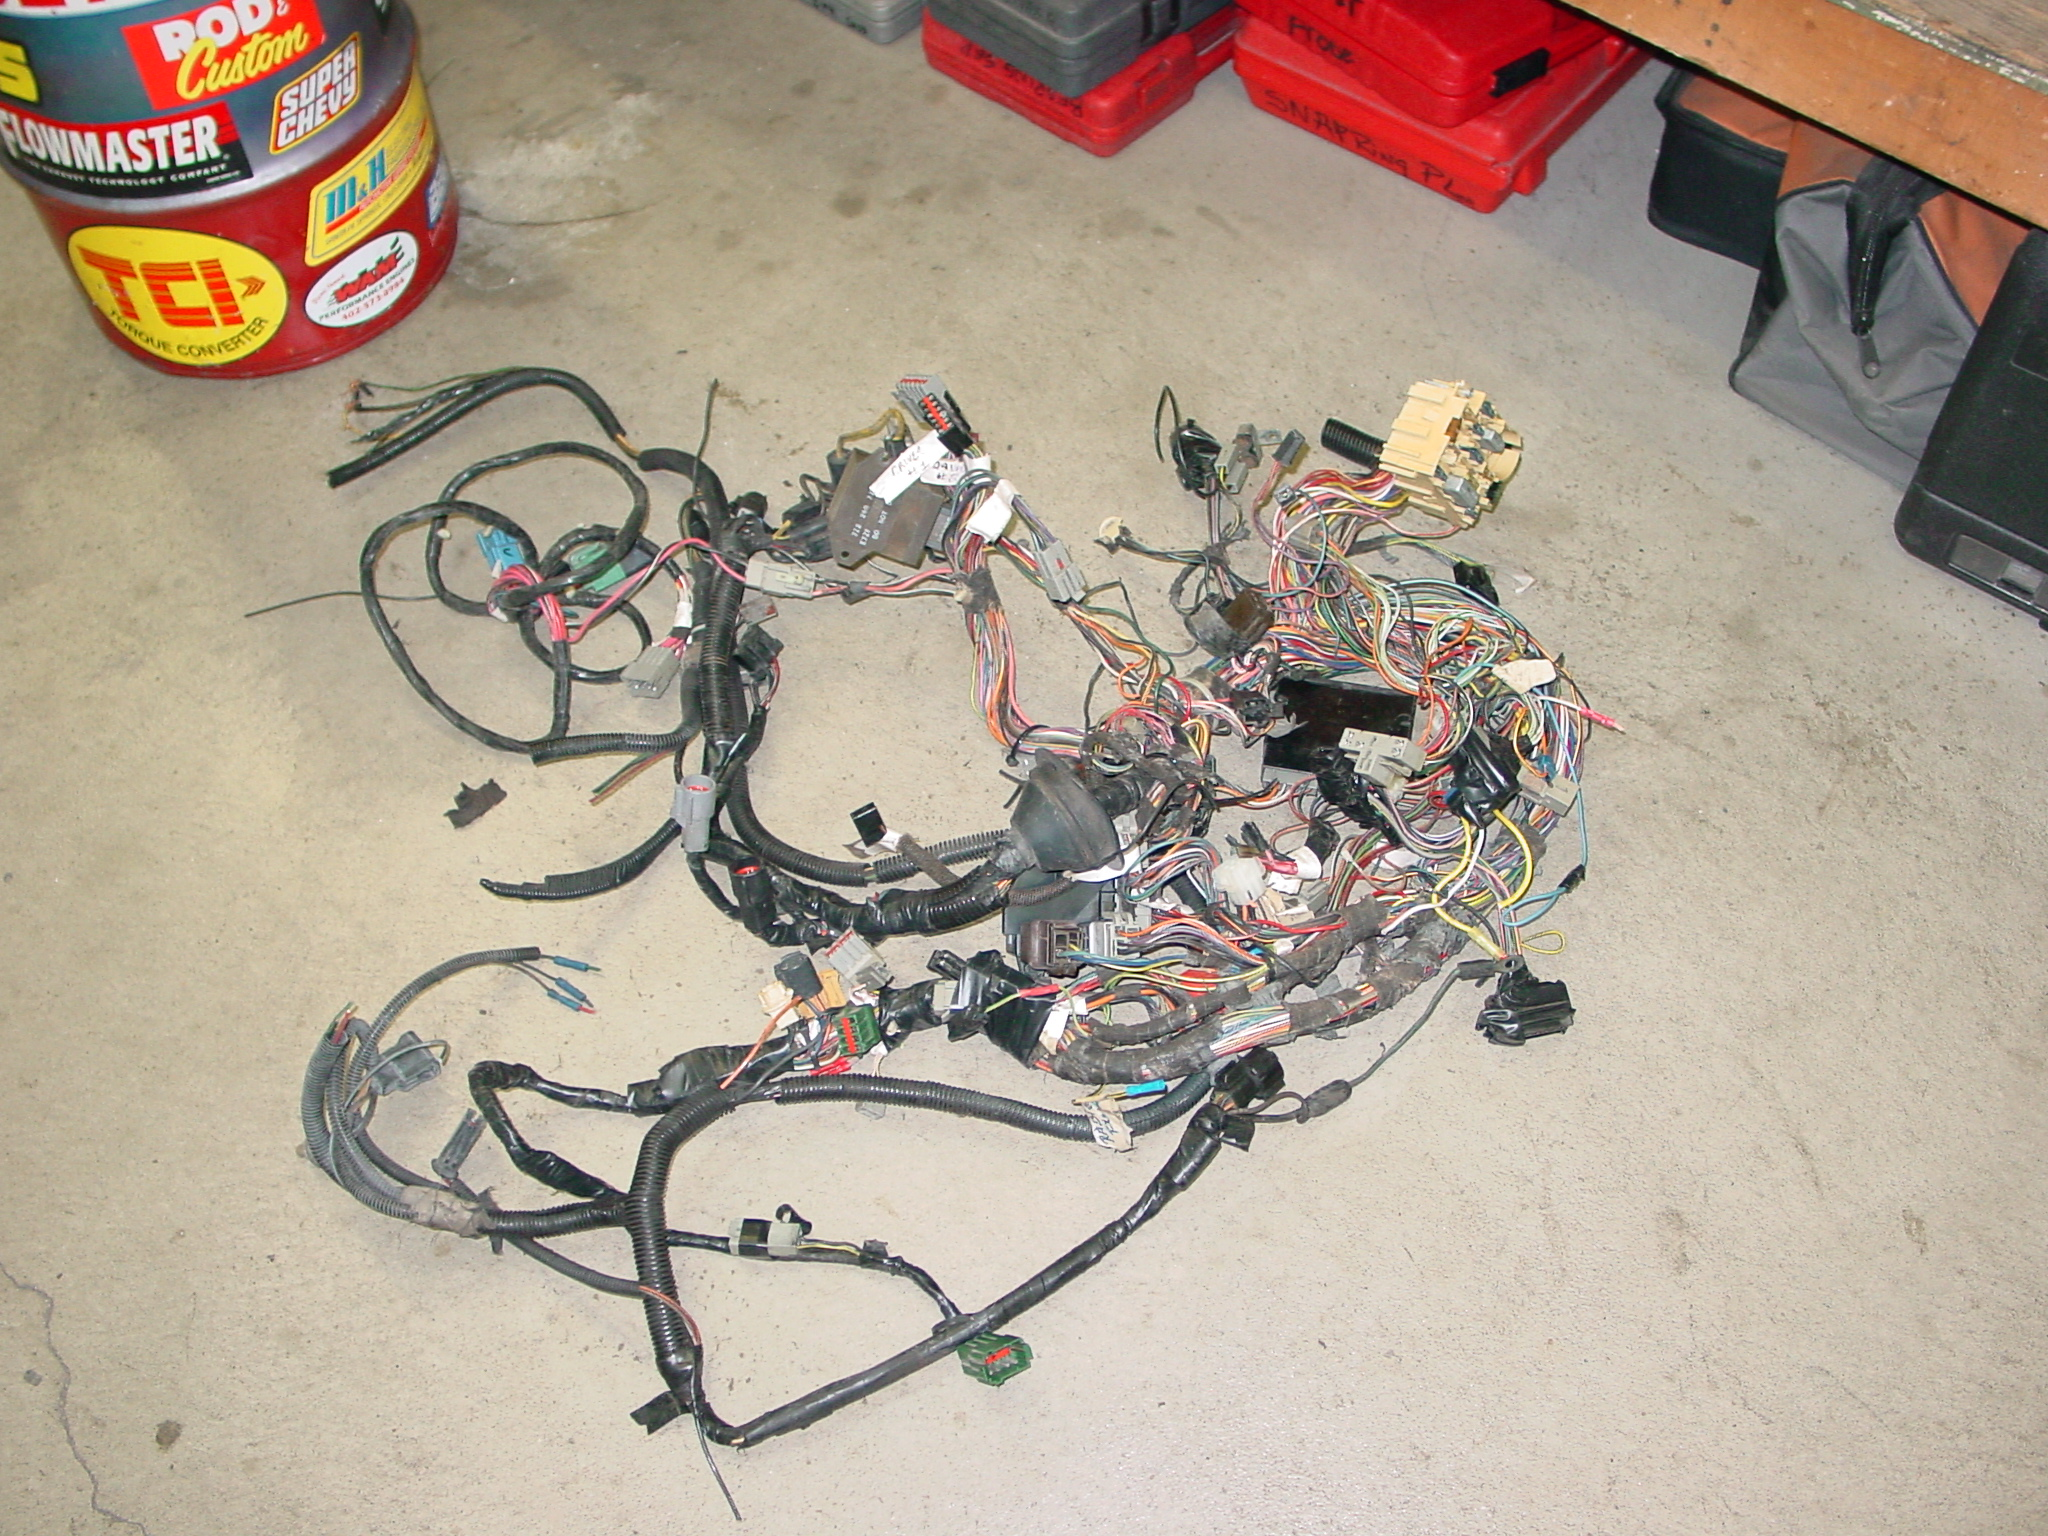 cobra harness before